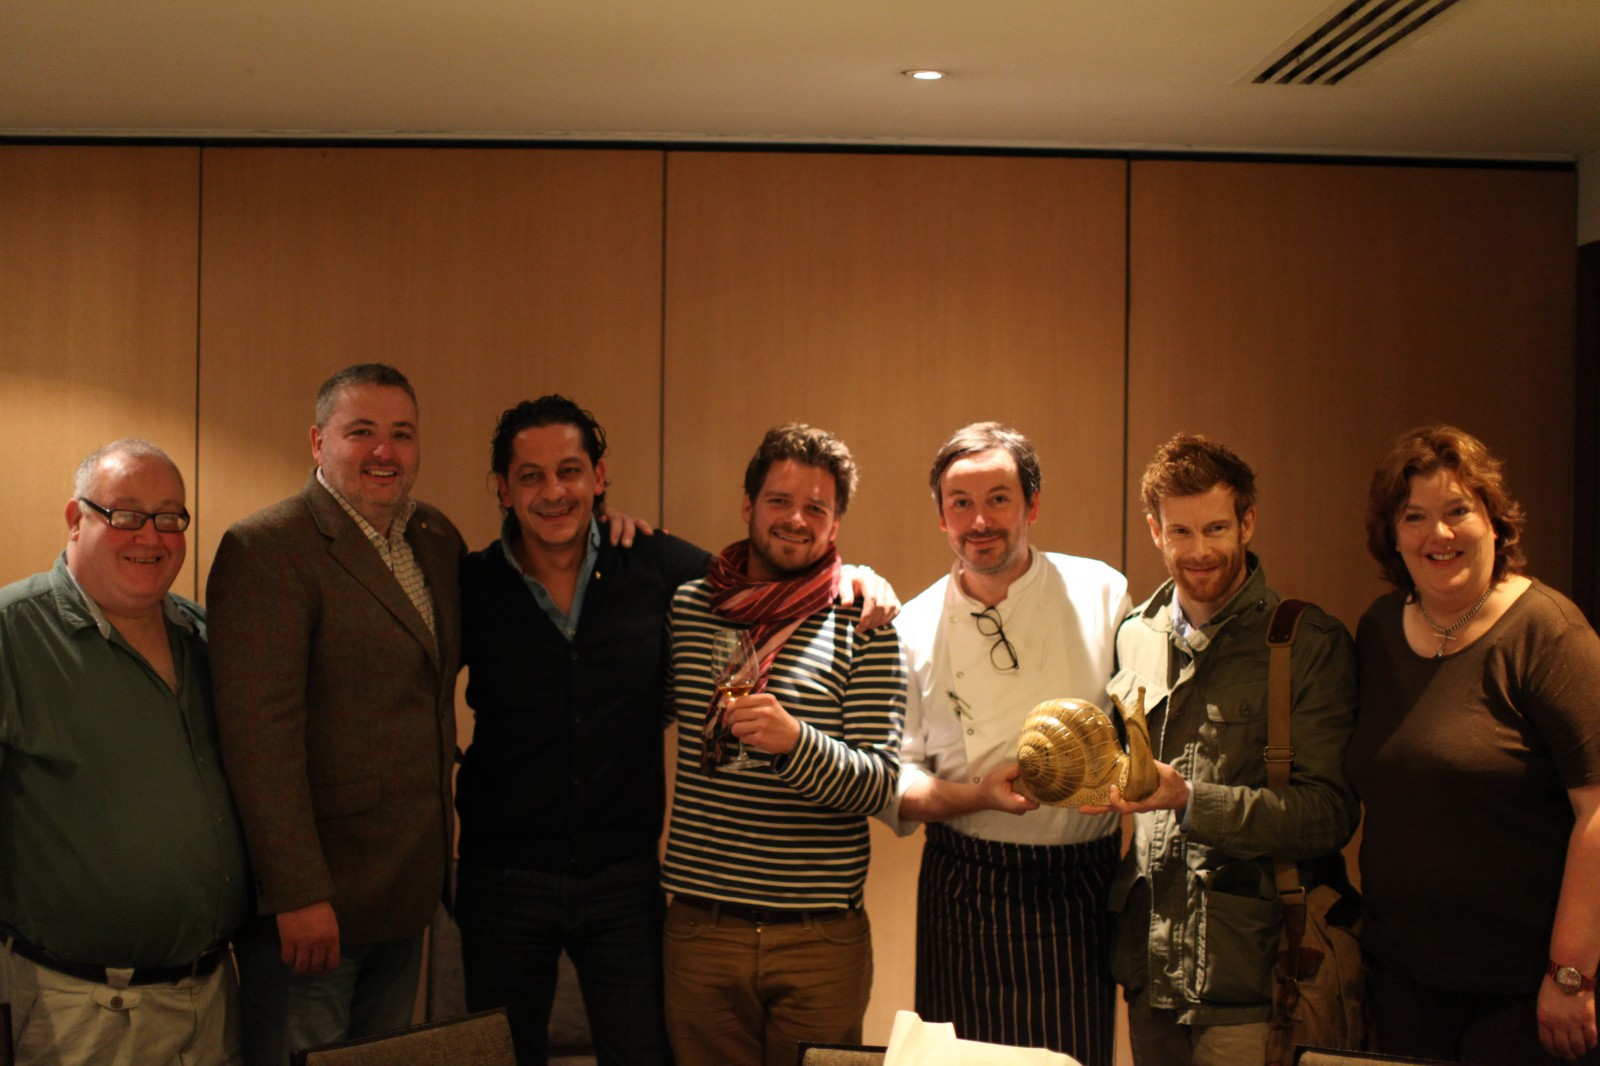 Leading chefs come together at Sartoria to mark Slow Food Chef Alliance growth